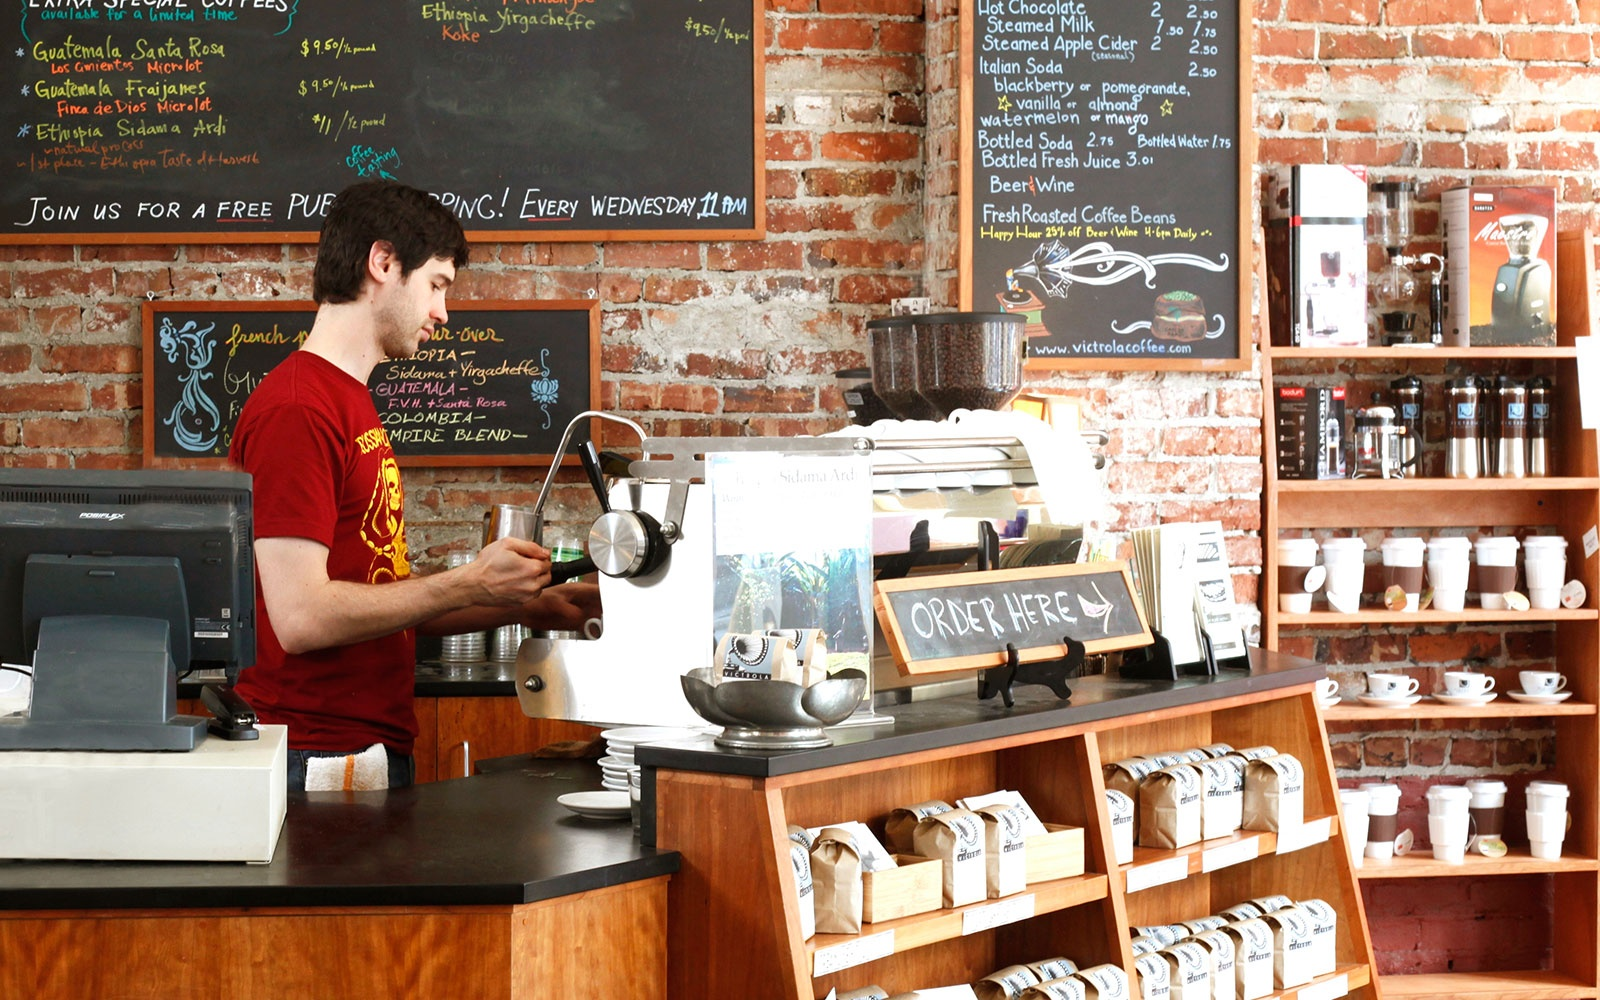 Best for Coffee Education: Victrola Coffee Roasters' Pike Place Location